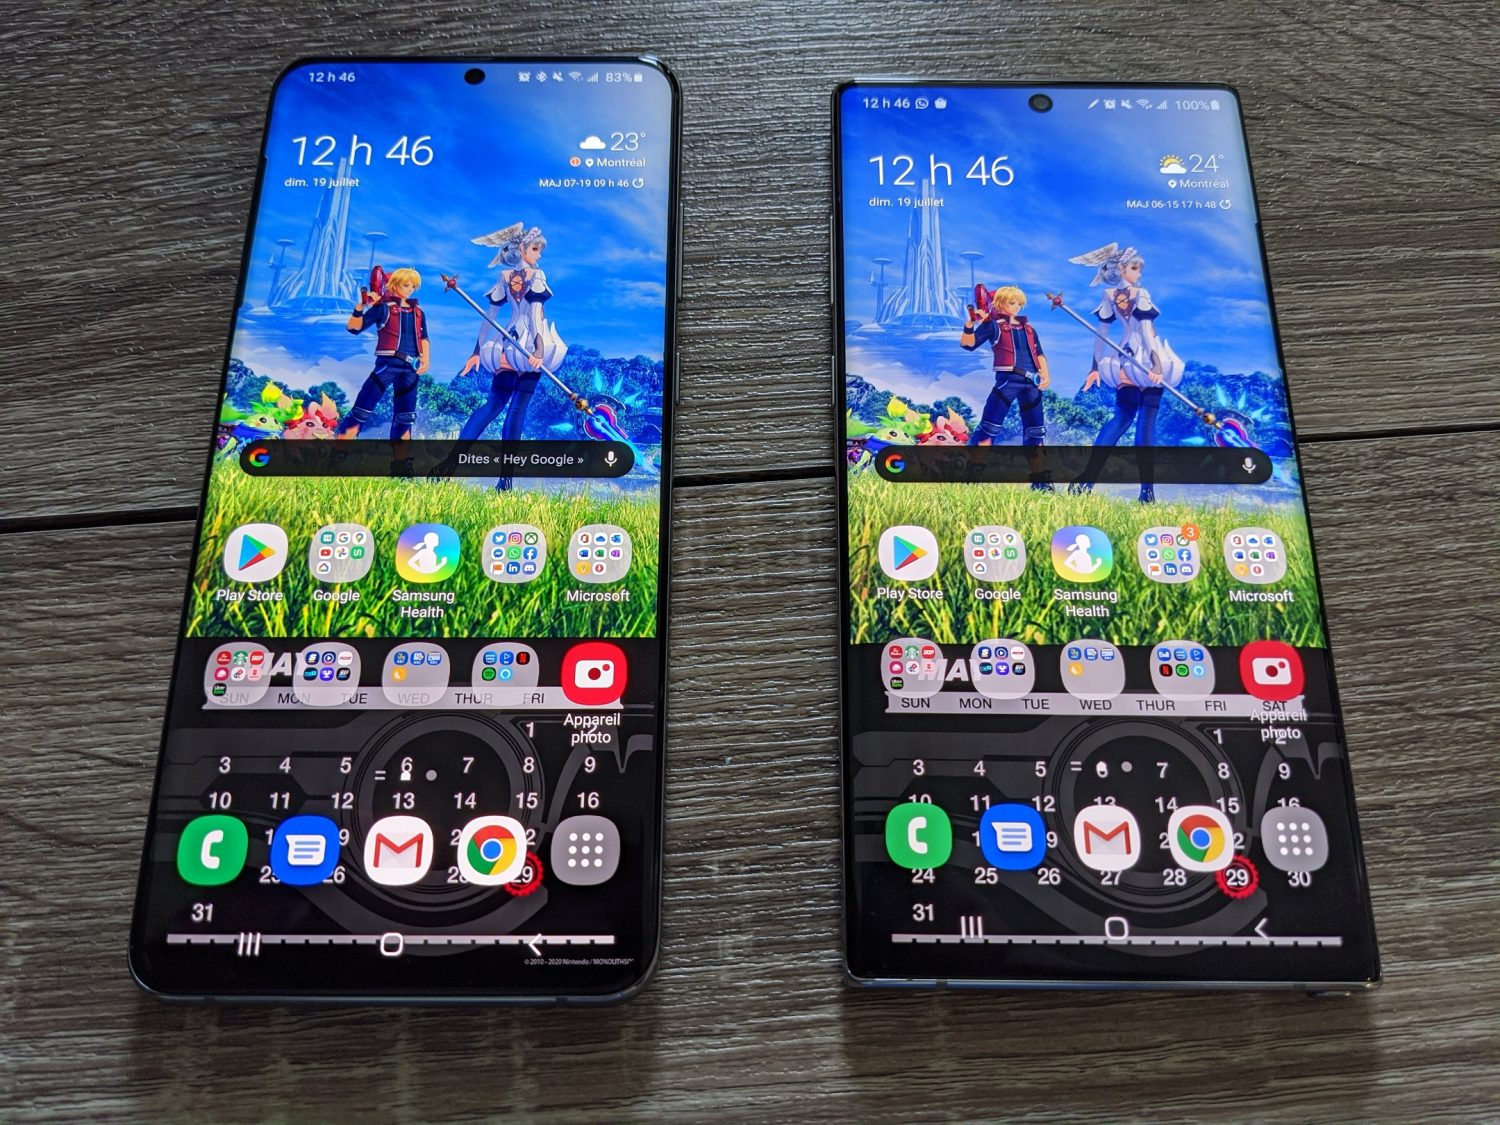 S20 Ultra 5G Note10+ comparaison